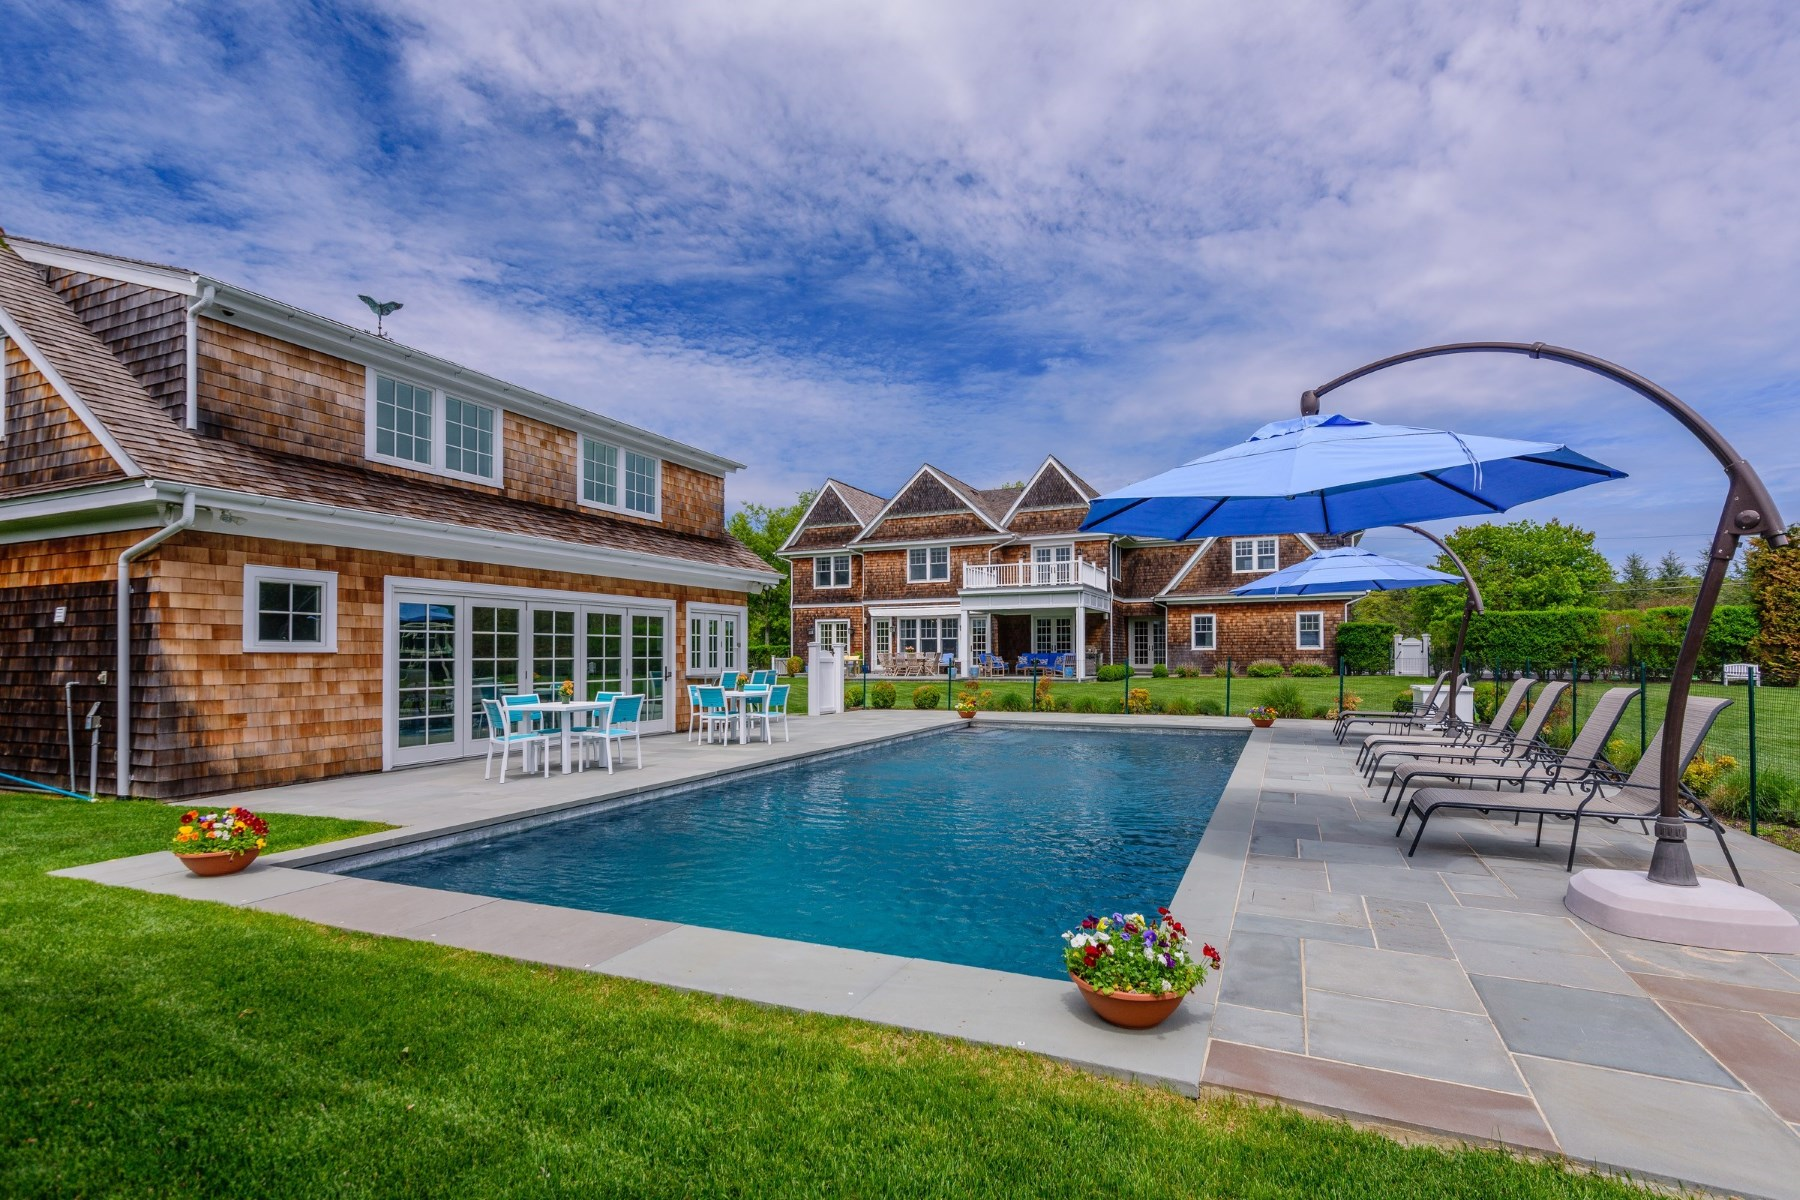 단독 가정 주택 용 매매 에 Resort Living with Sunset Views 590 Lumber Lane Bridgehampton North, Bridgehampton, 뉴욕 11932 미국